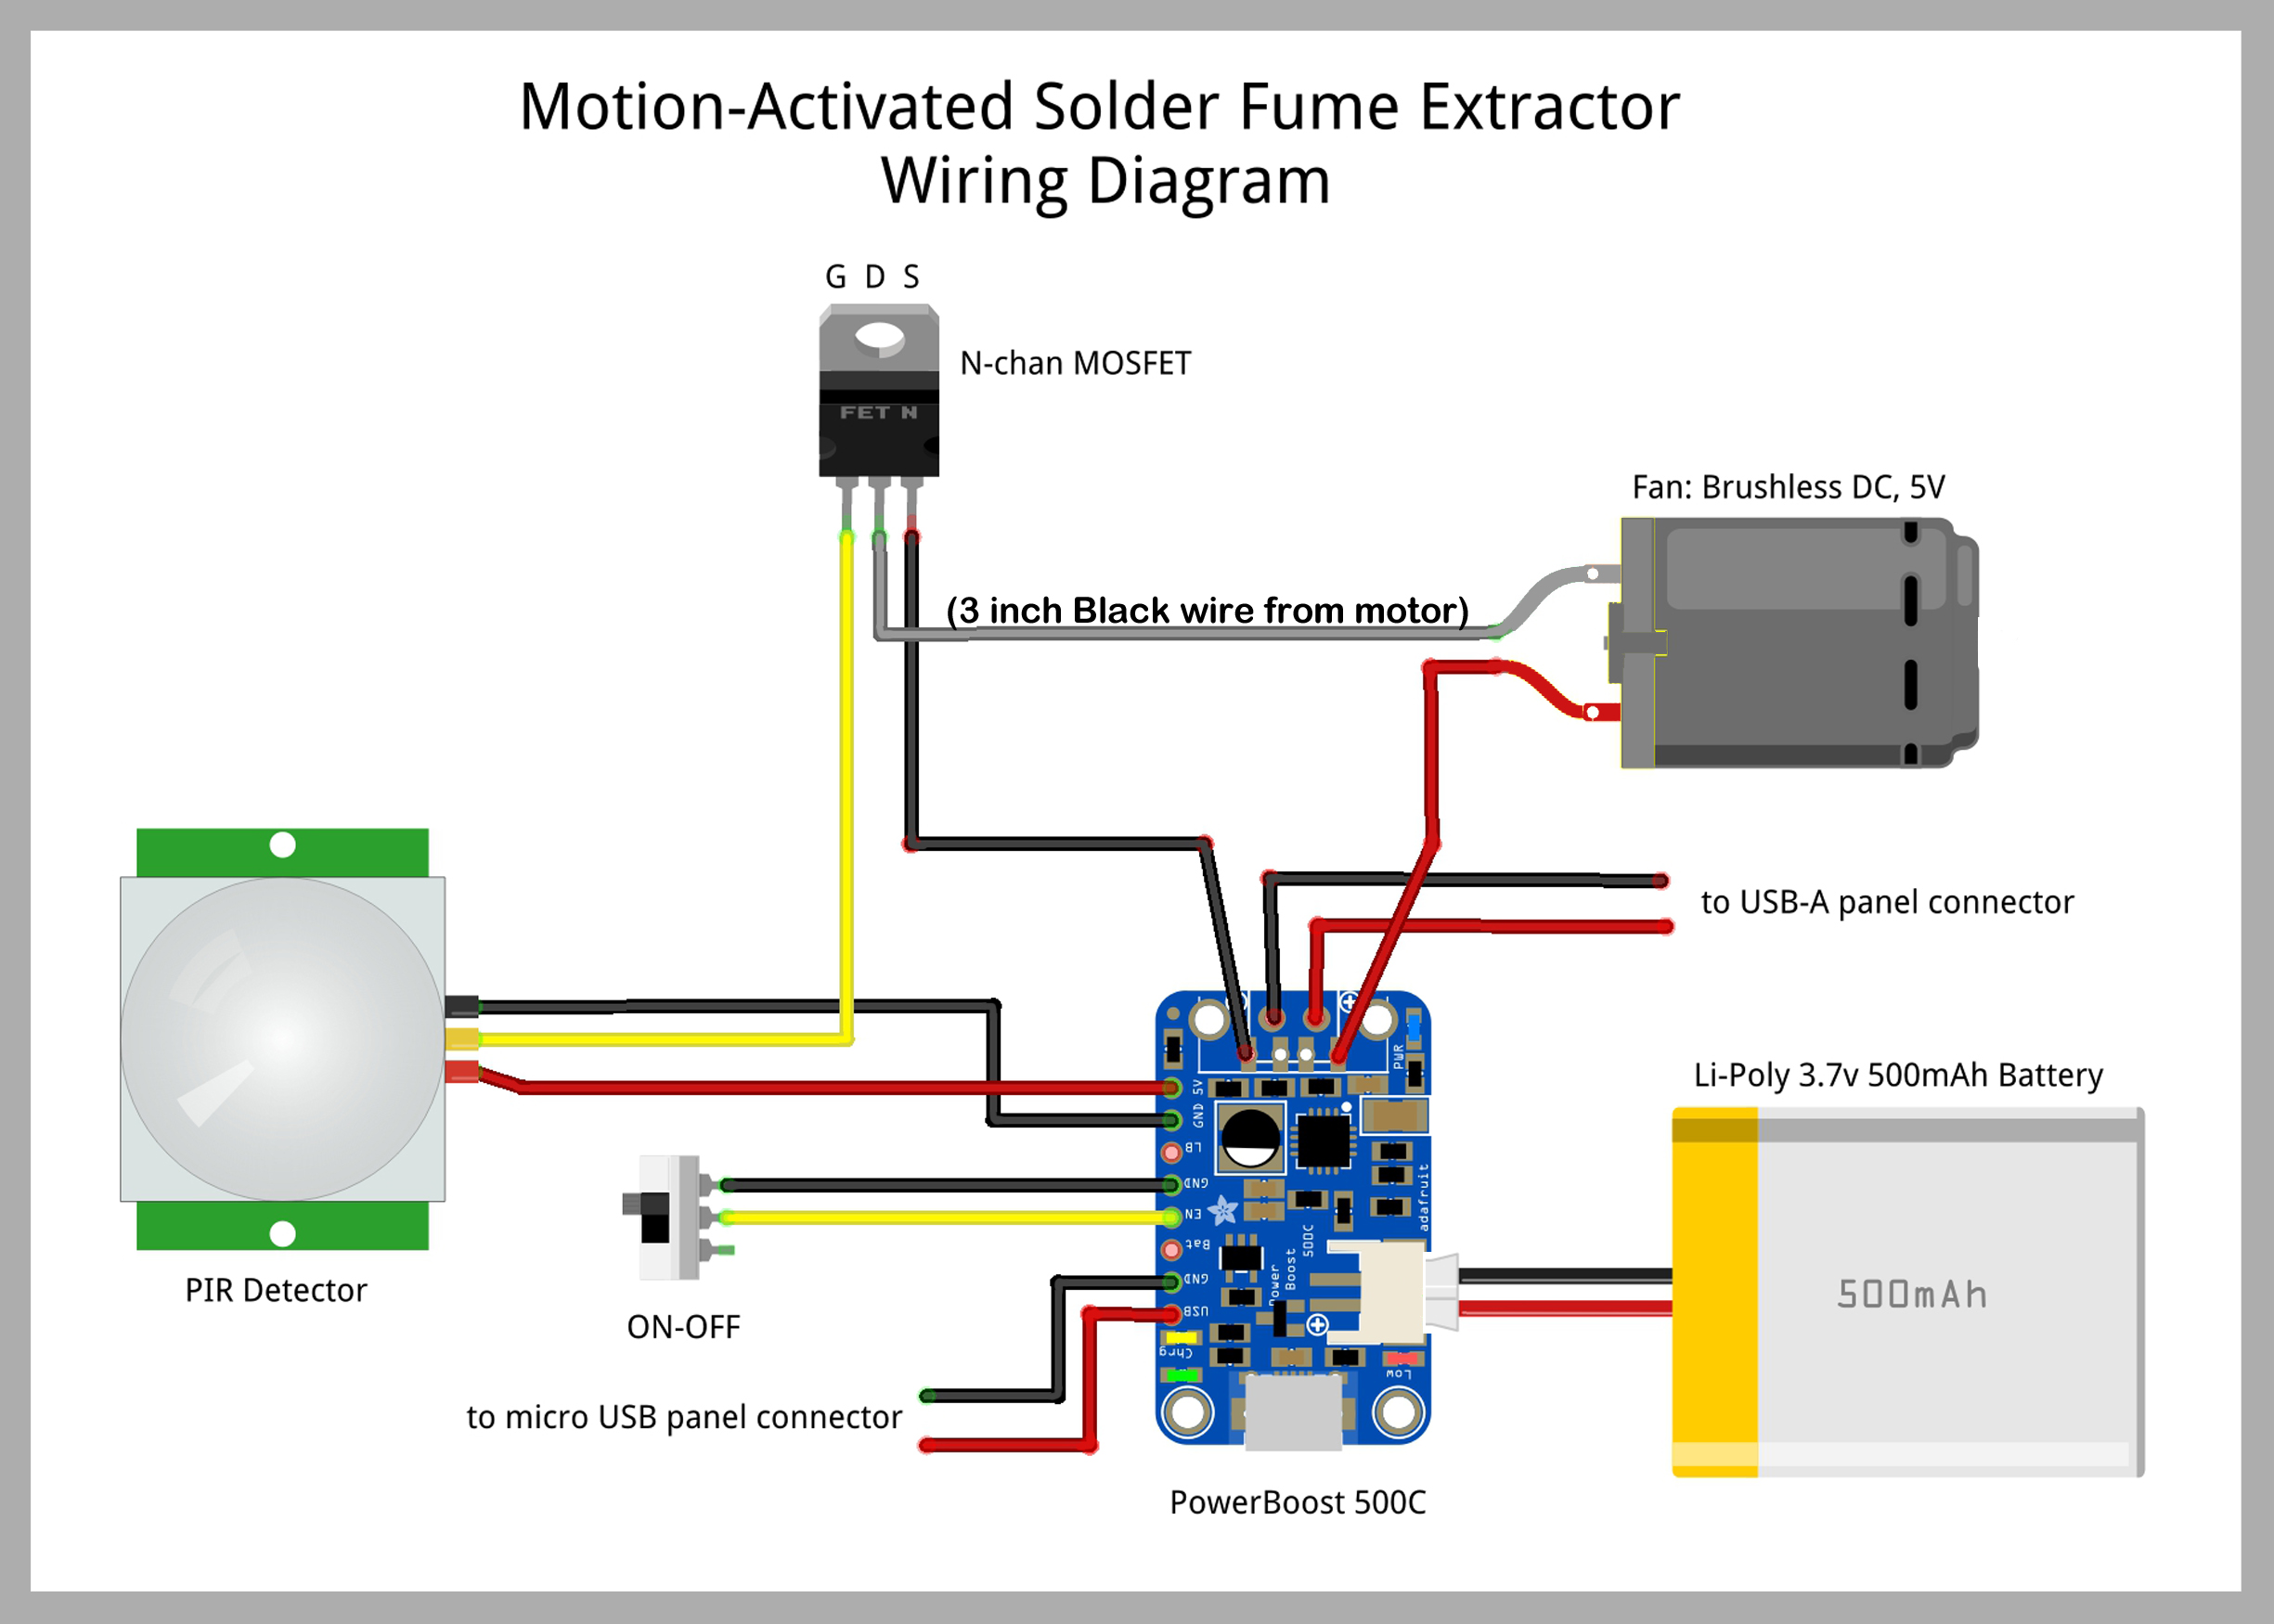 tools_Fume_Extractor_v03_bba_wiring.jpg